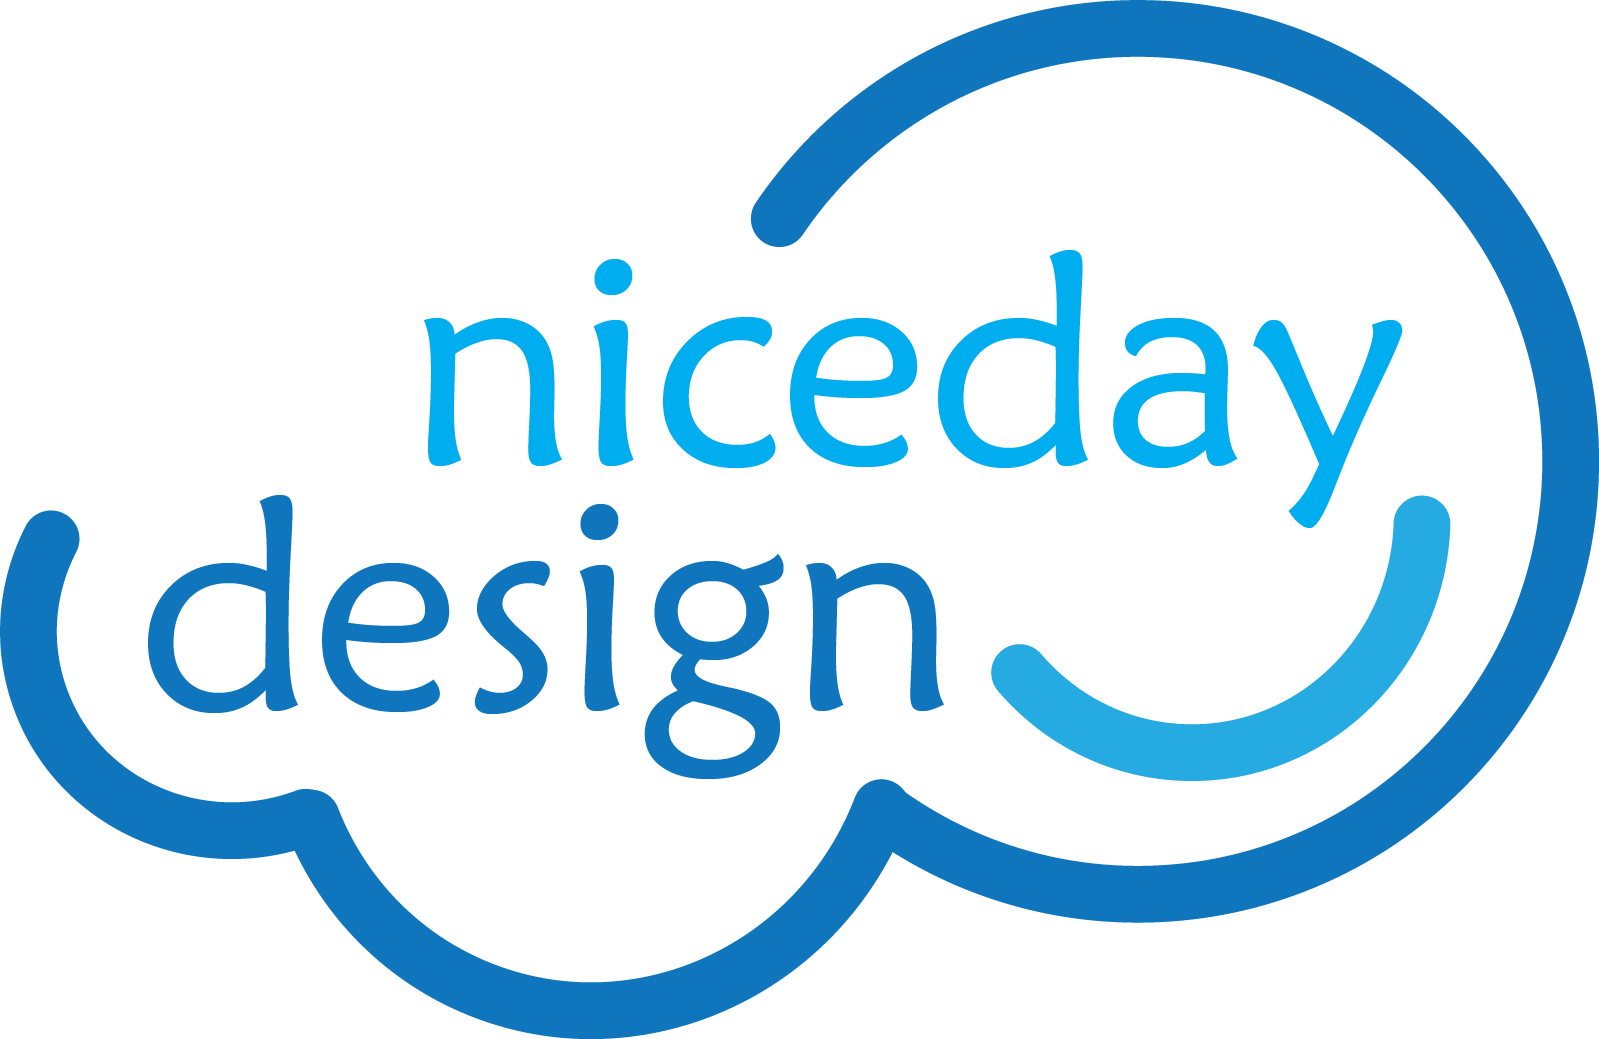 niceday-design